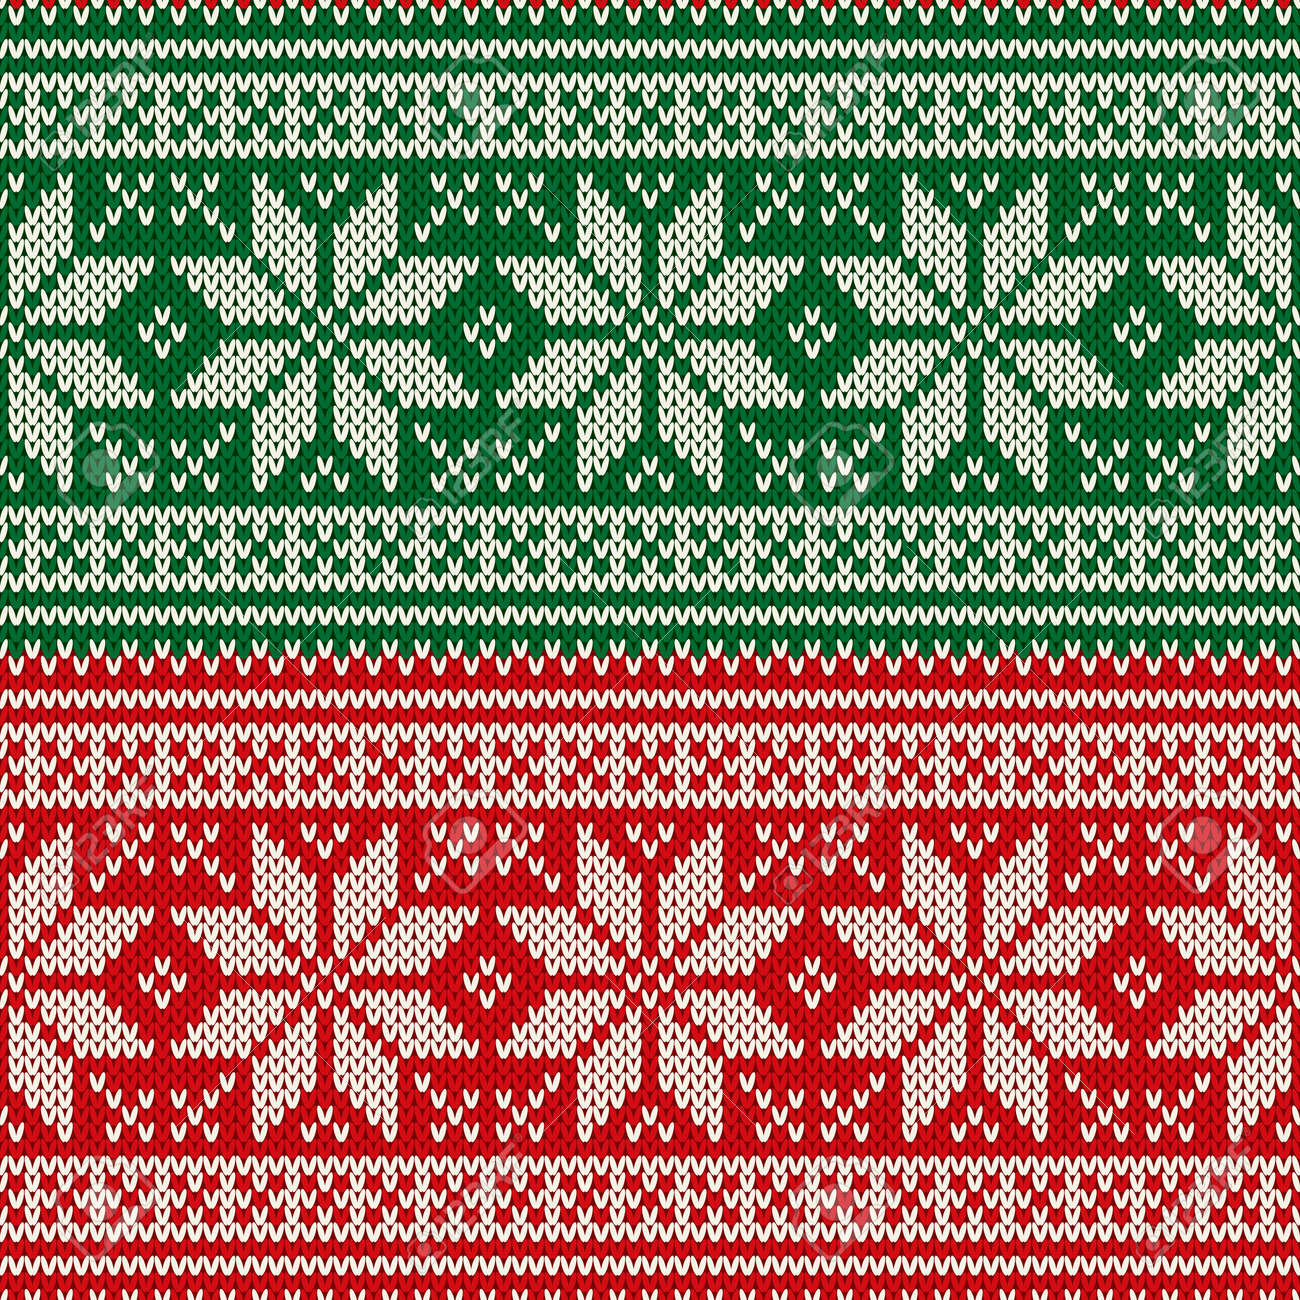 Traditional Christmas Seamless Knitted Pattern With Snowflakes ...